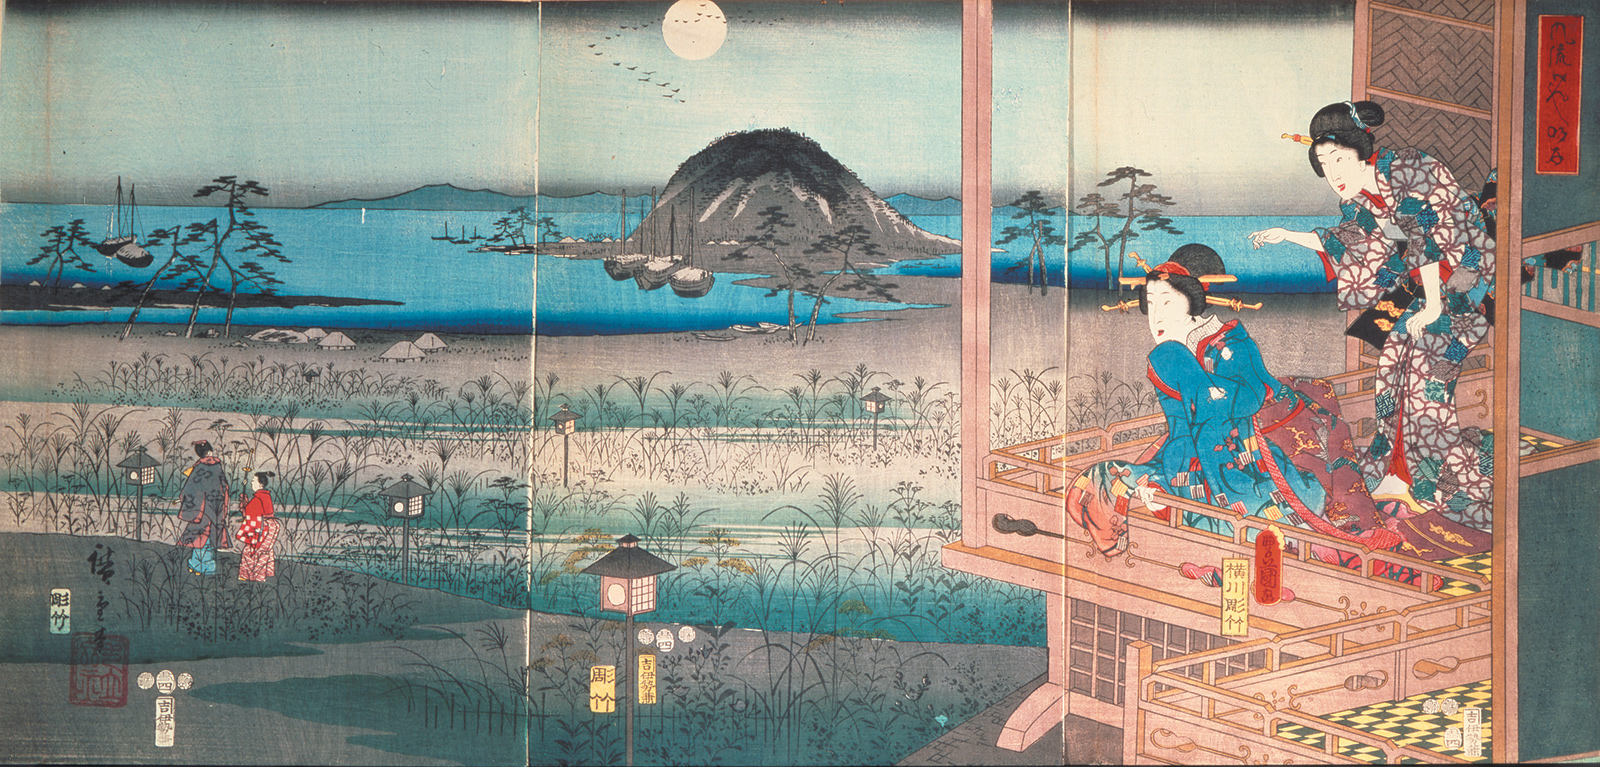 'Lady Fugitsubo watching Prince Genji departing in the moonlight'; Japanese woodblock print of a scene from The Tale of Genji, 1853